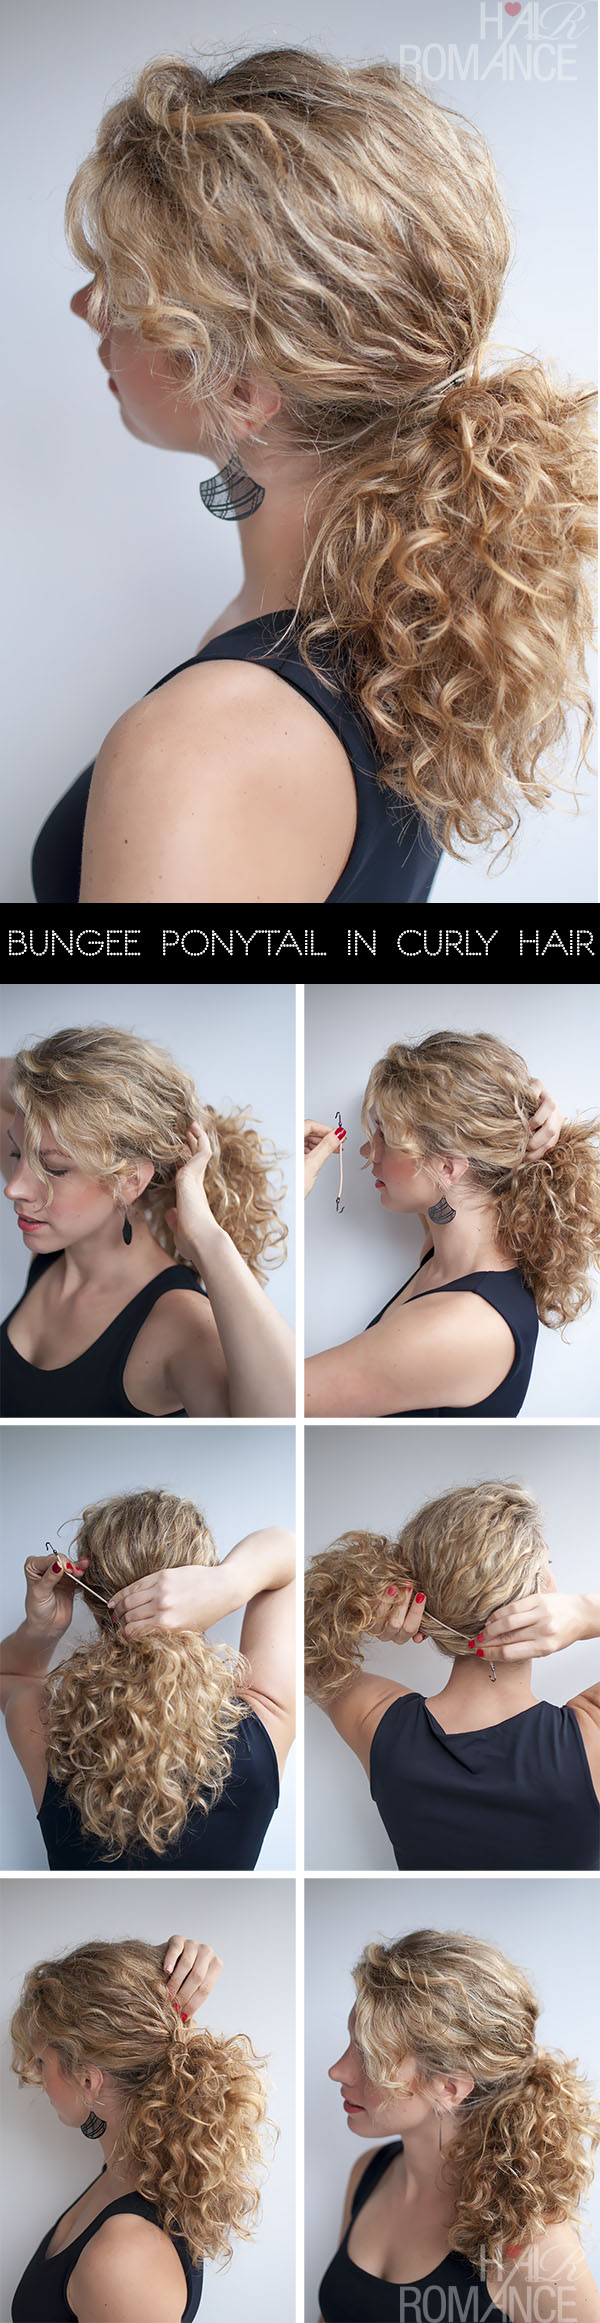 Hair Romance - Bungee Ponytail Hair Tutorial in curly hair